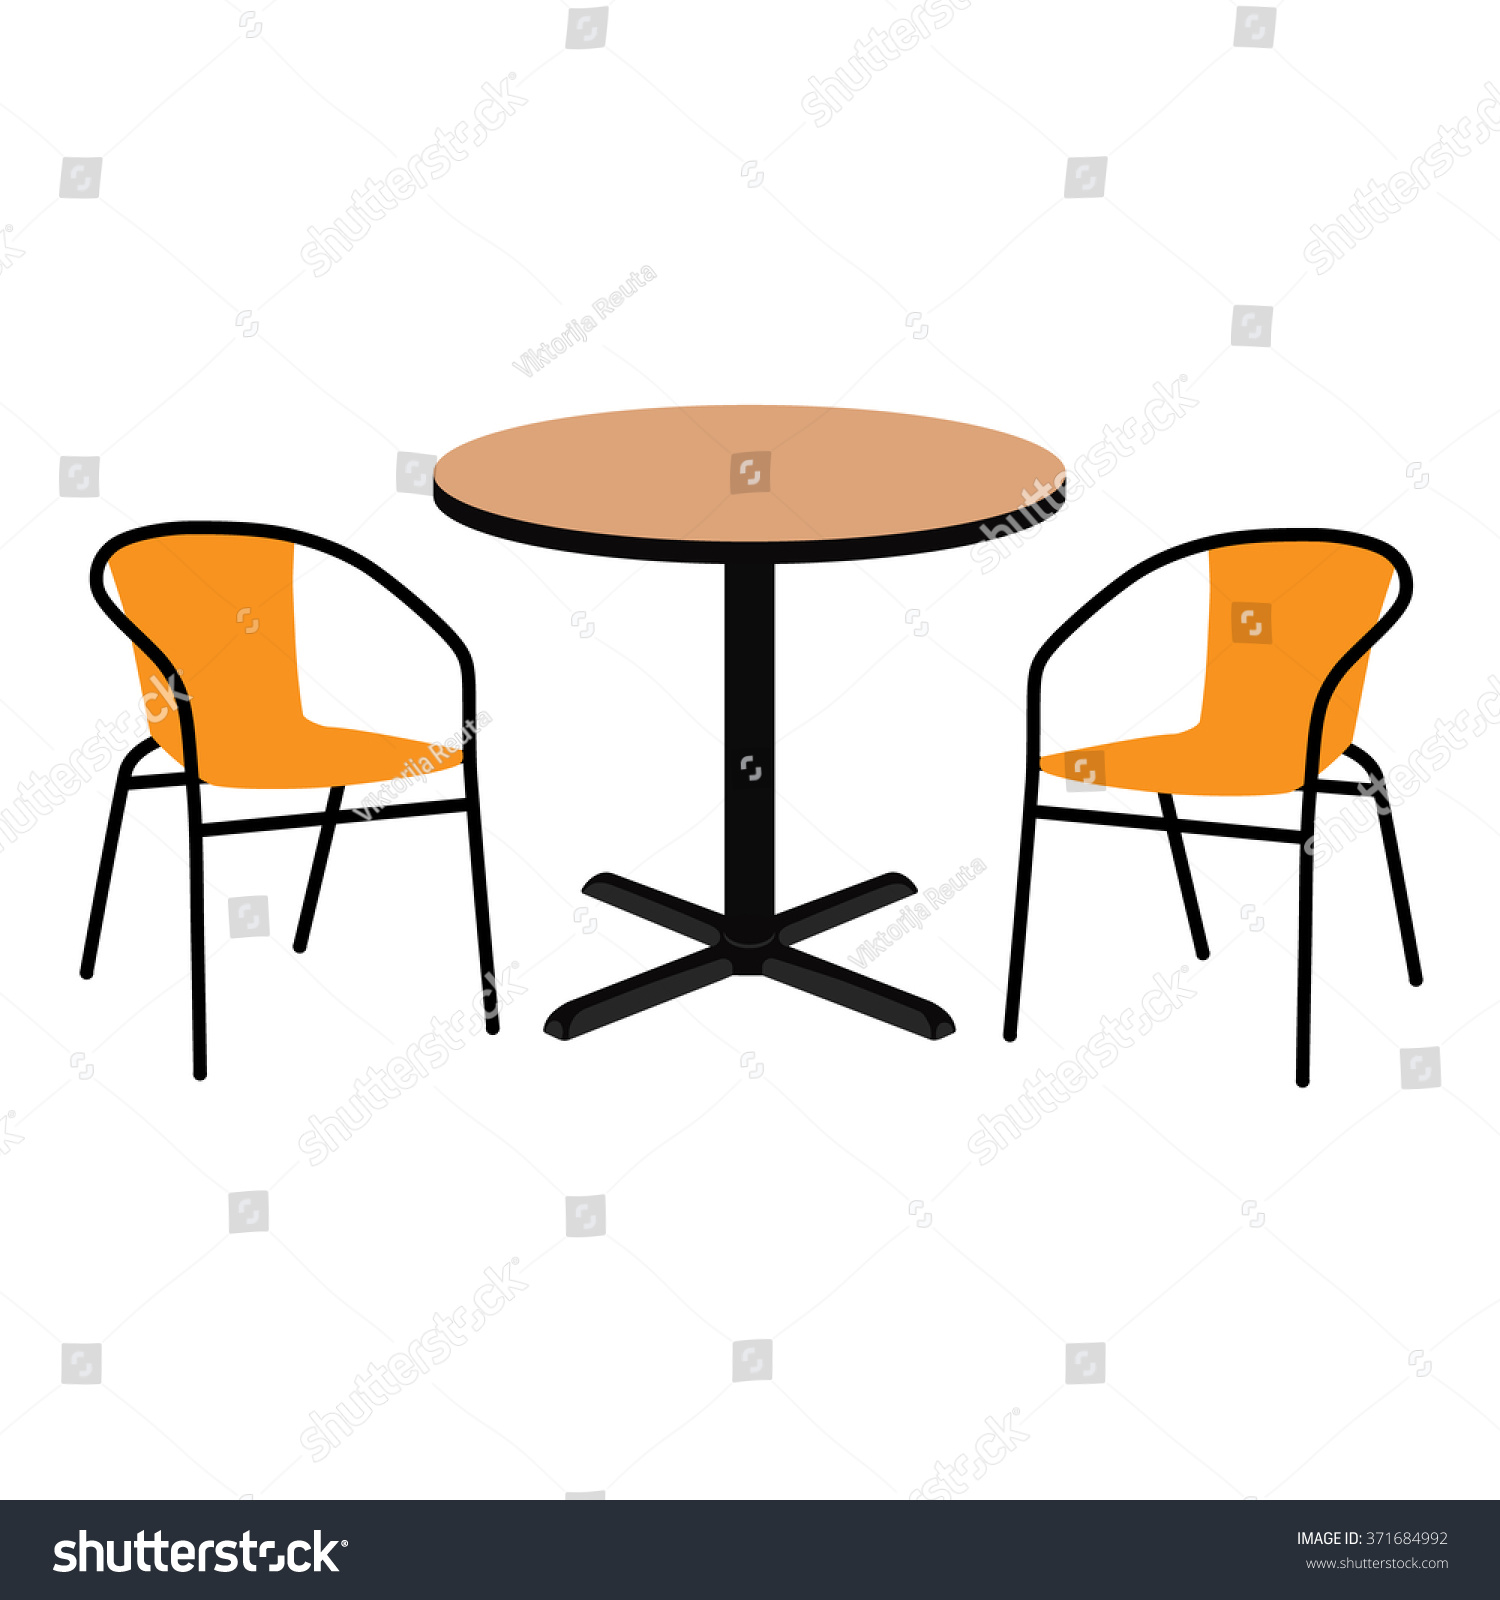 Vector illustration wooden outdoor table two stock vector for Table chair images